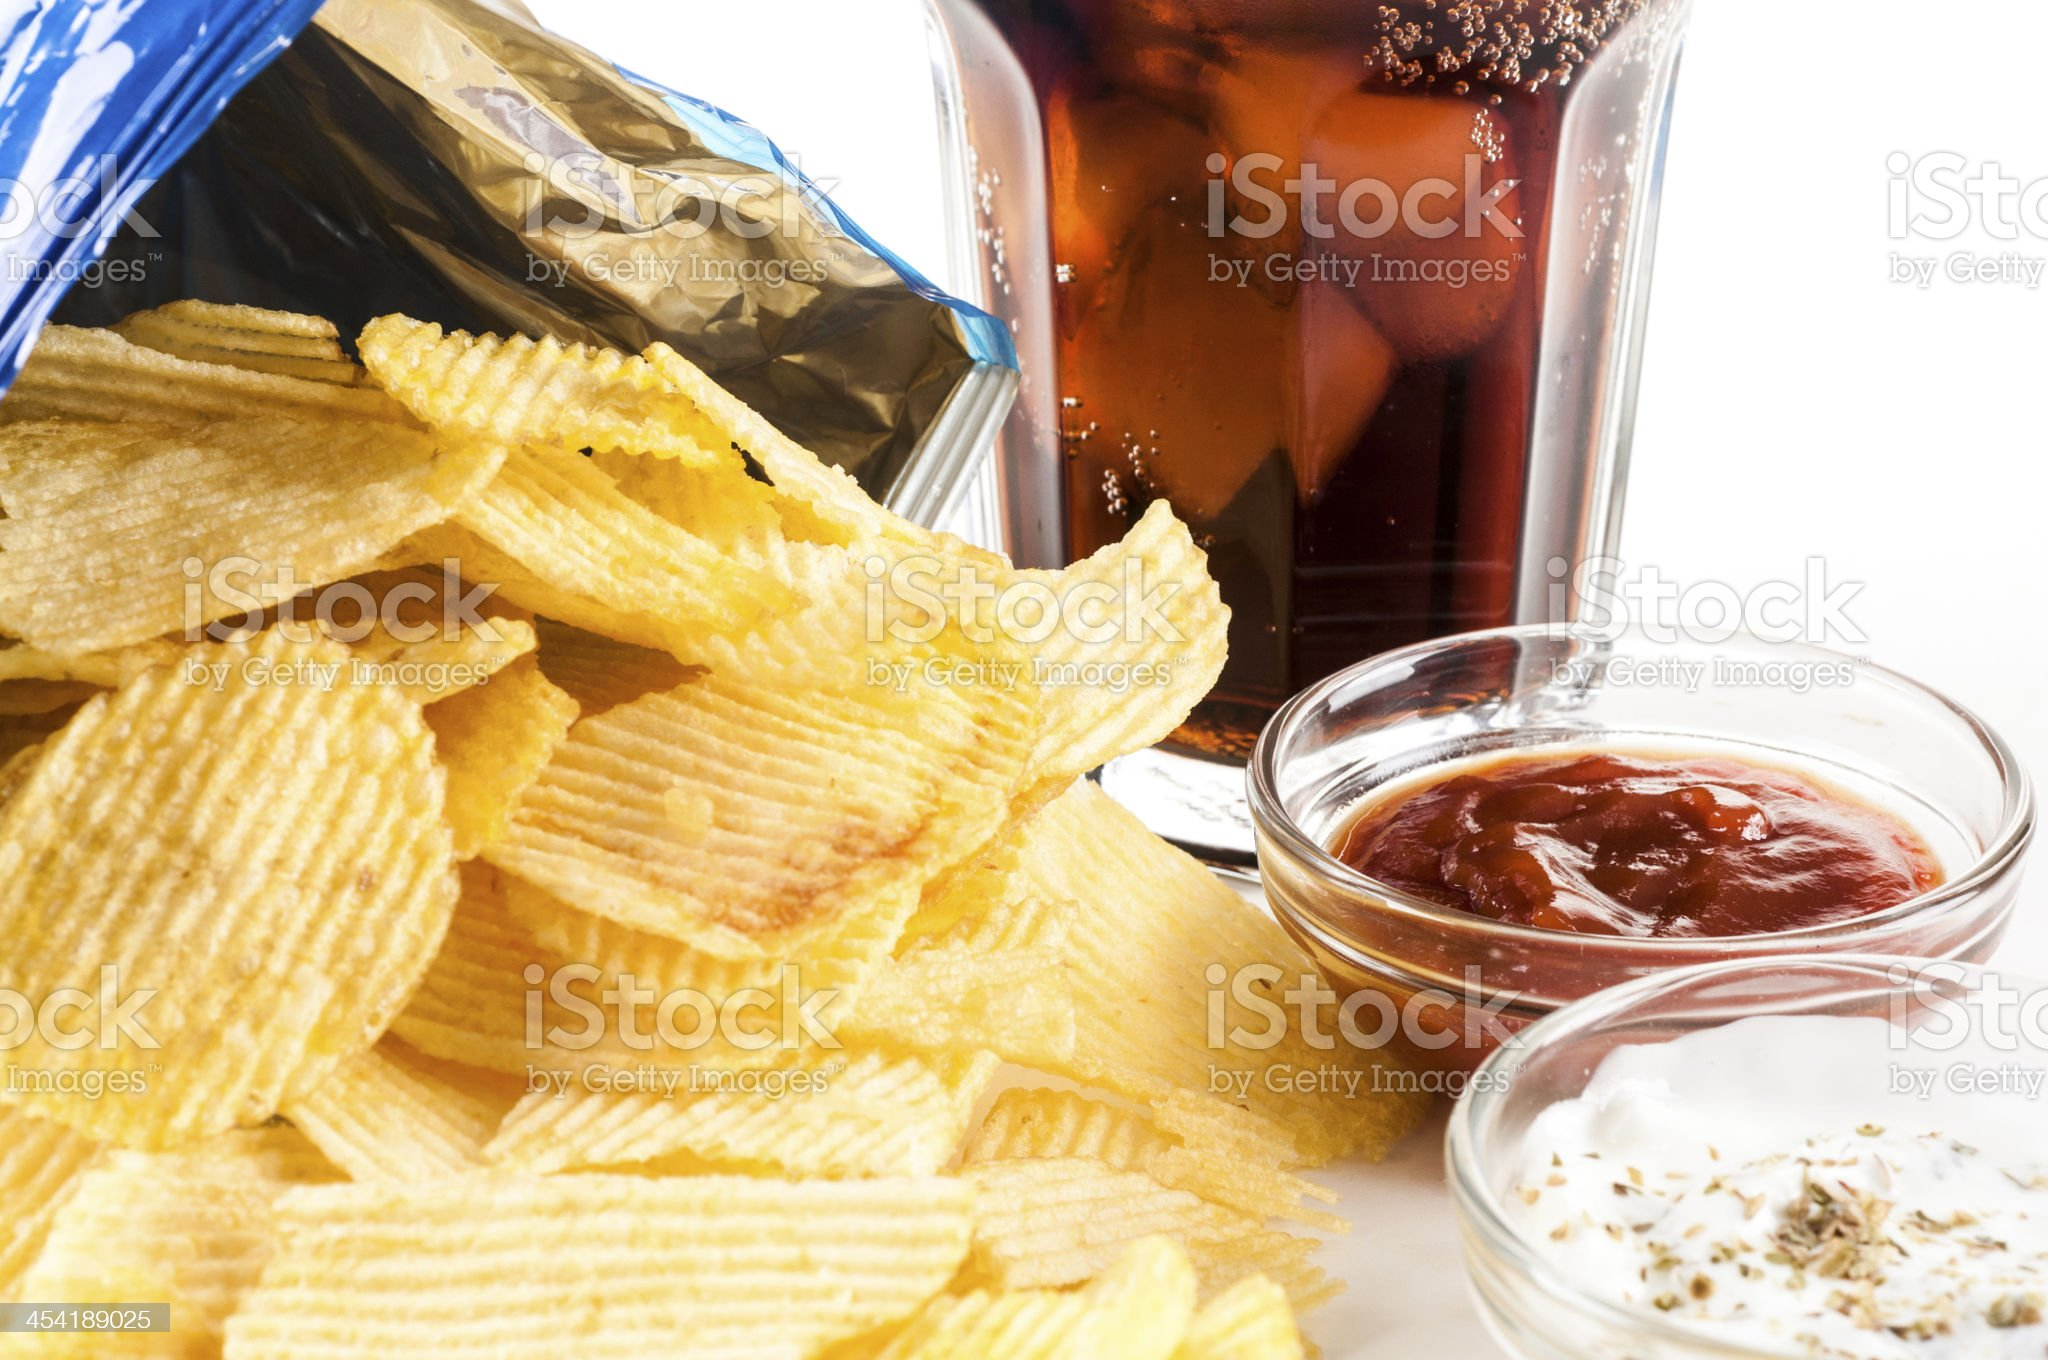 crisps and coke royalty-free stock photo